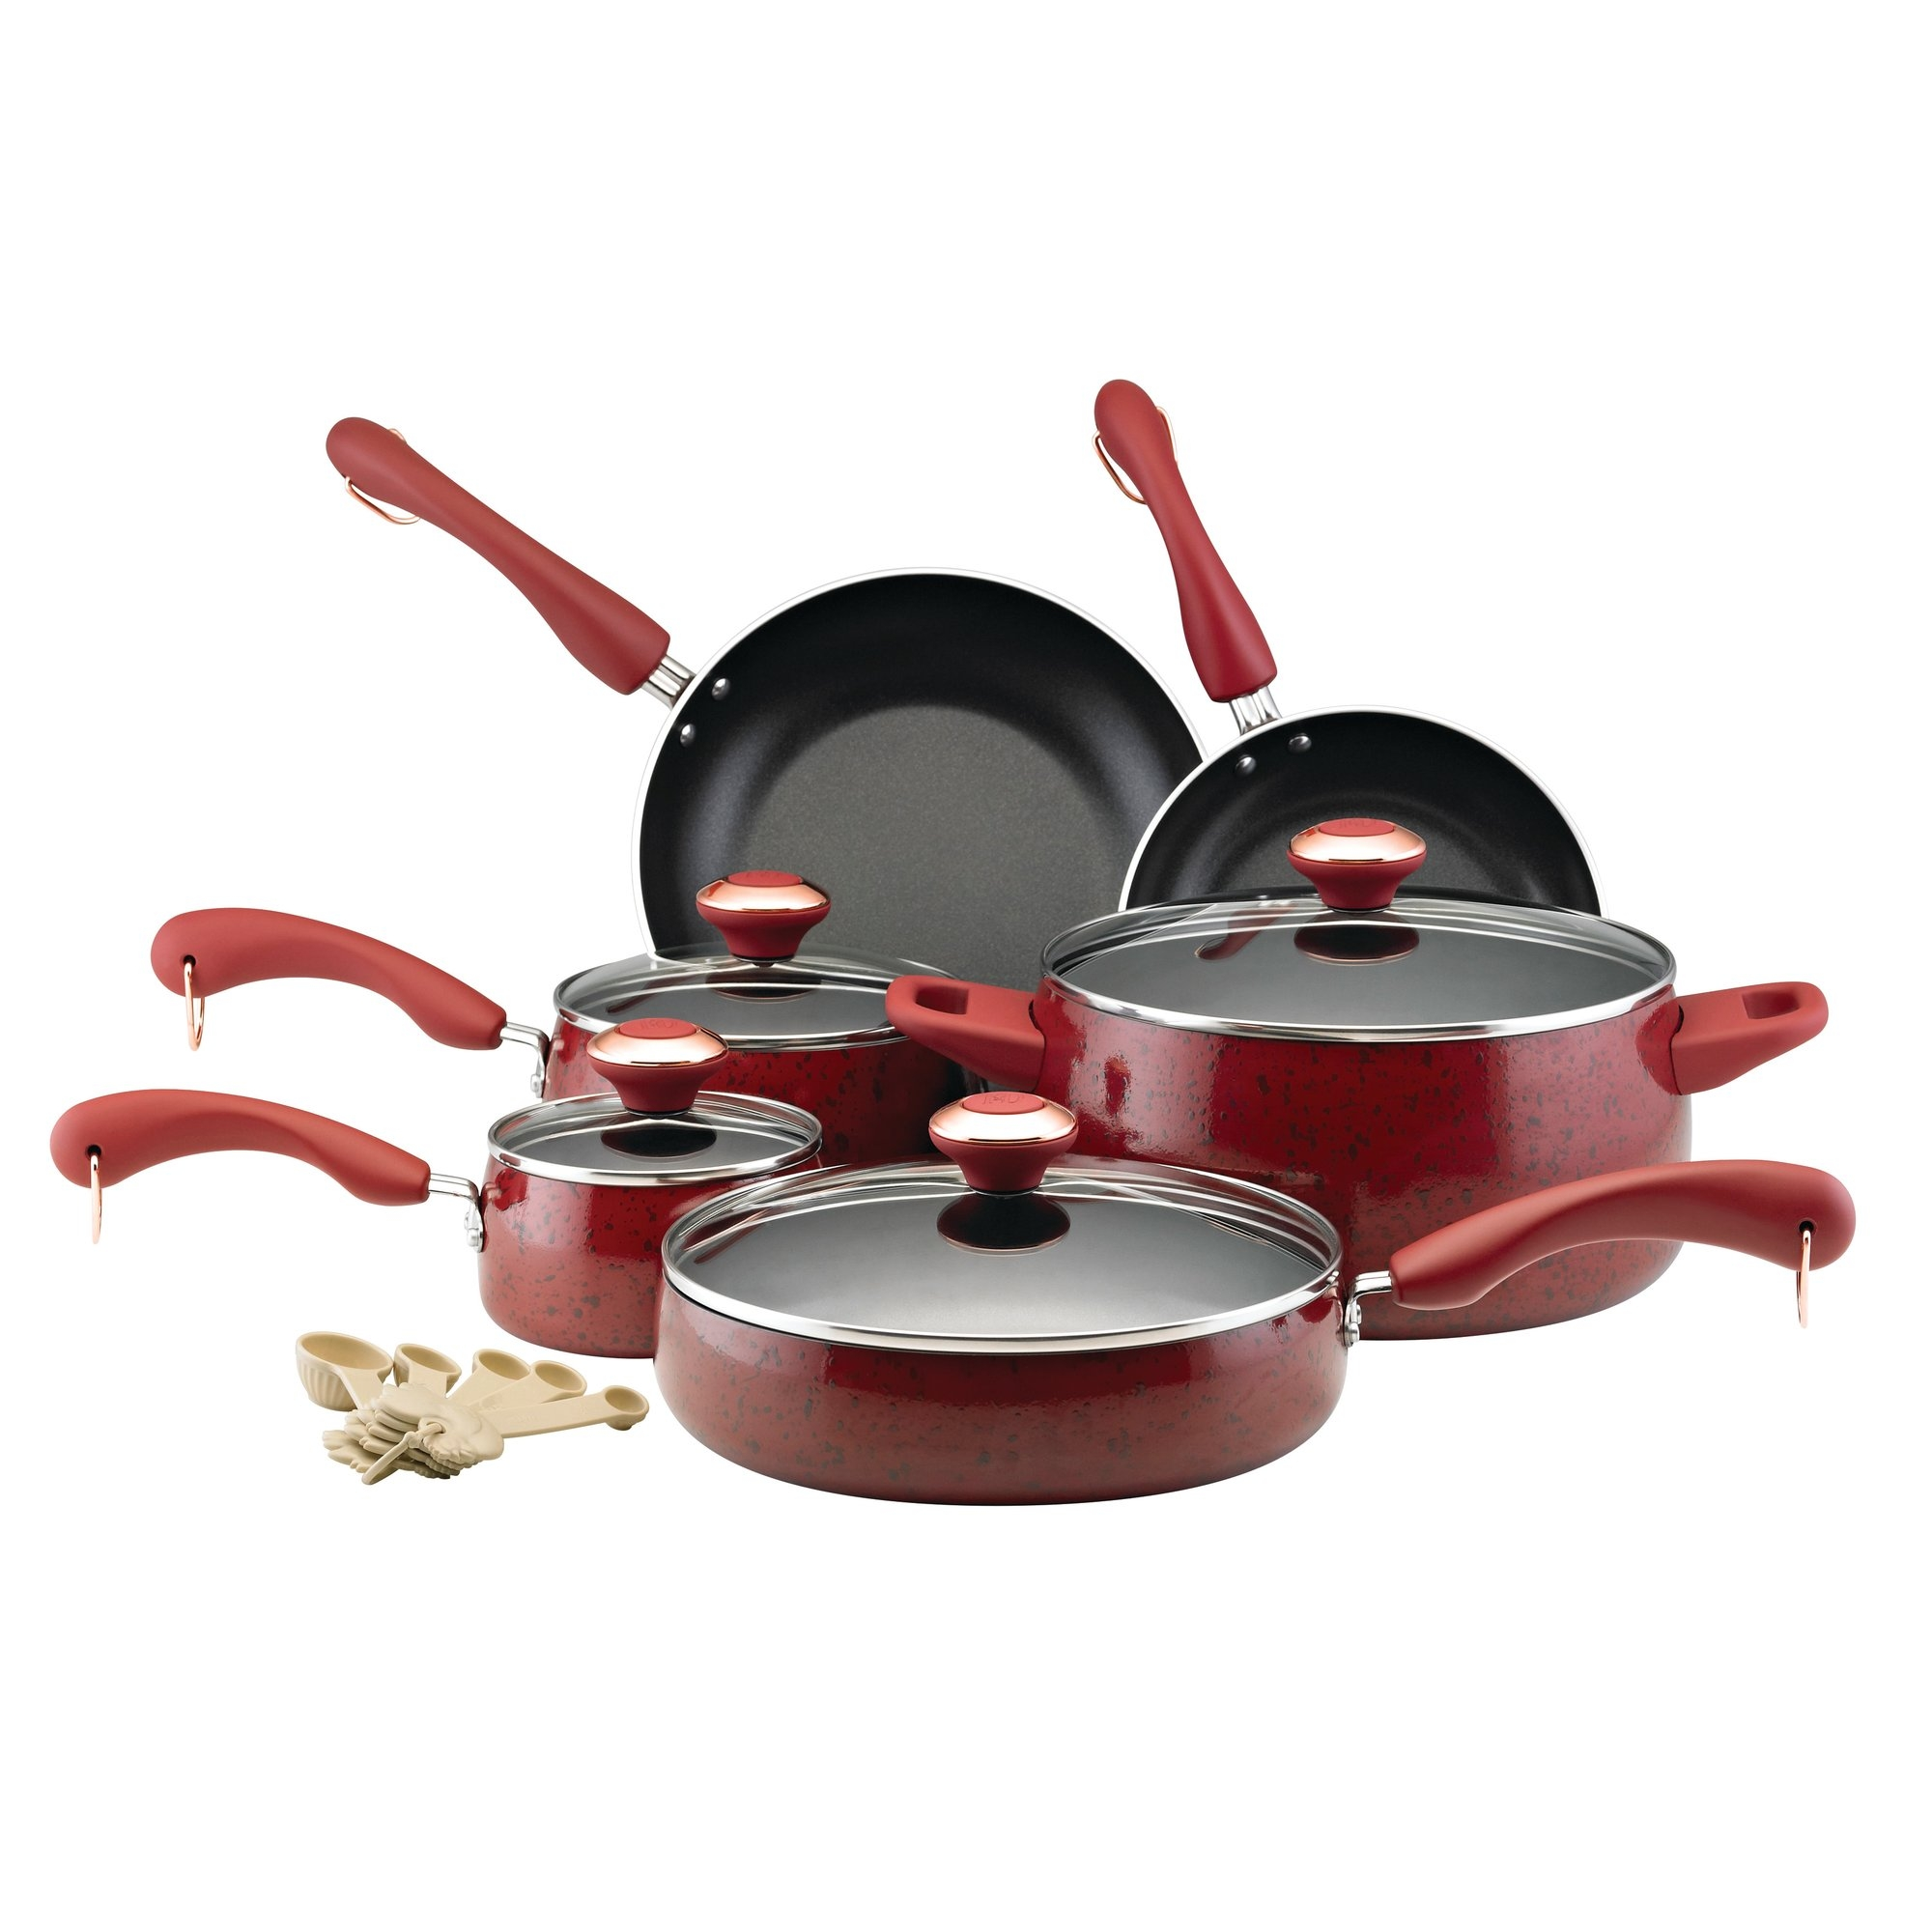 Permalink to Paula Deen 15 Piece Kitchen Cookware Set